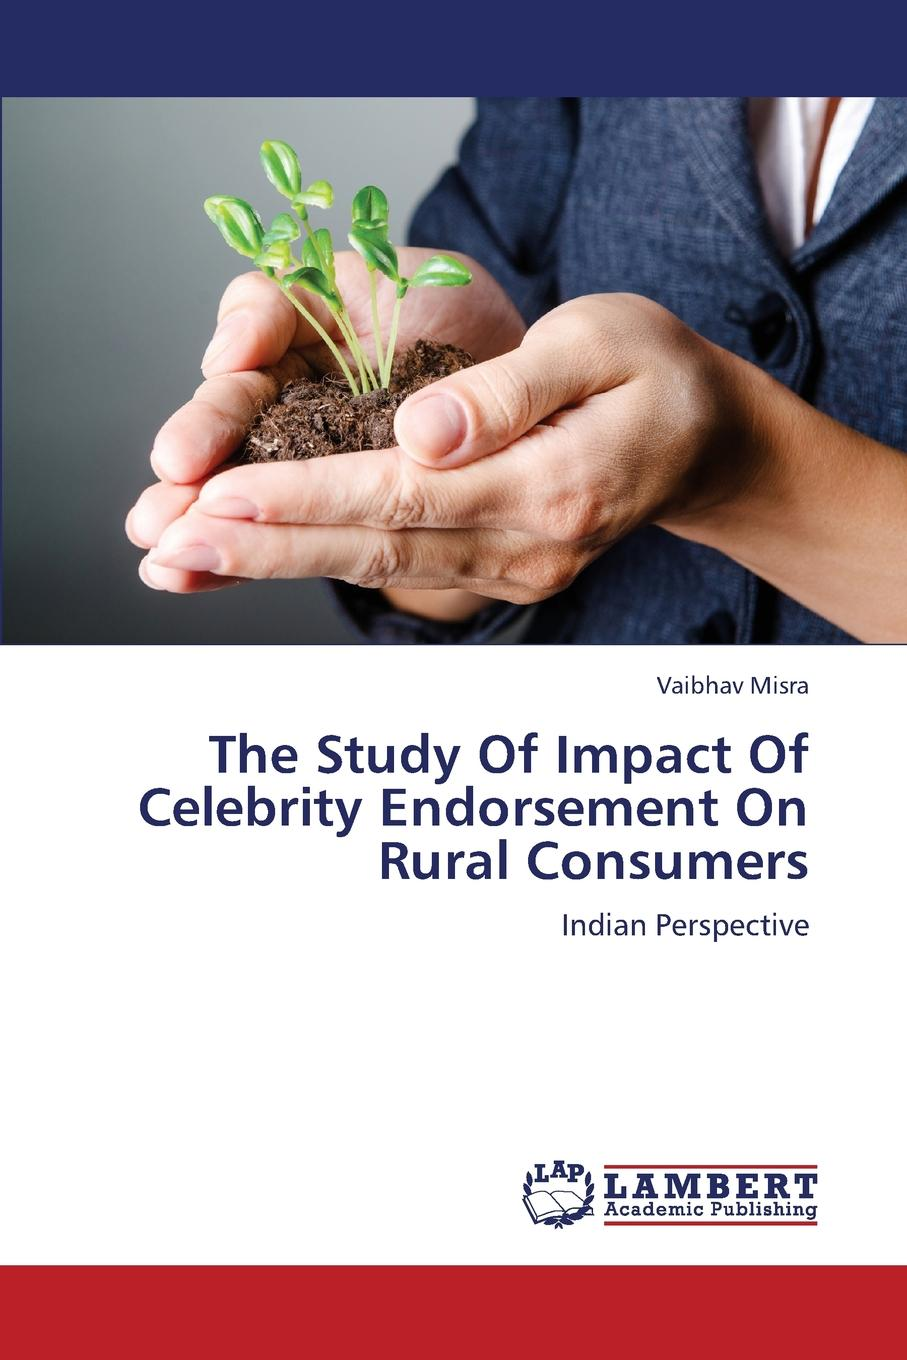 Misra Vaibhav The Study of Impact of Celebrity Endorsement on Rural Consumers